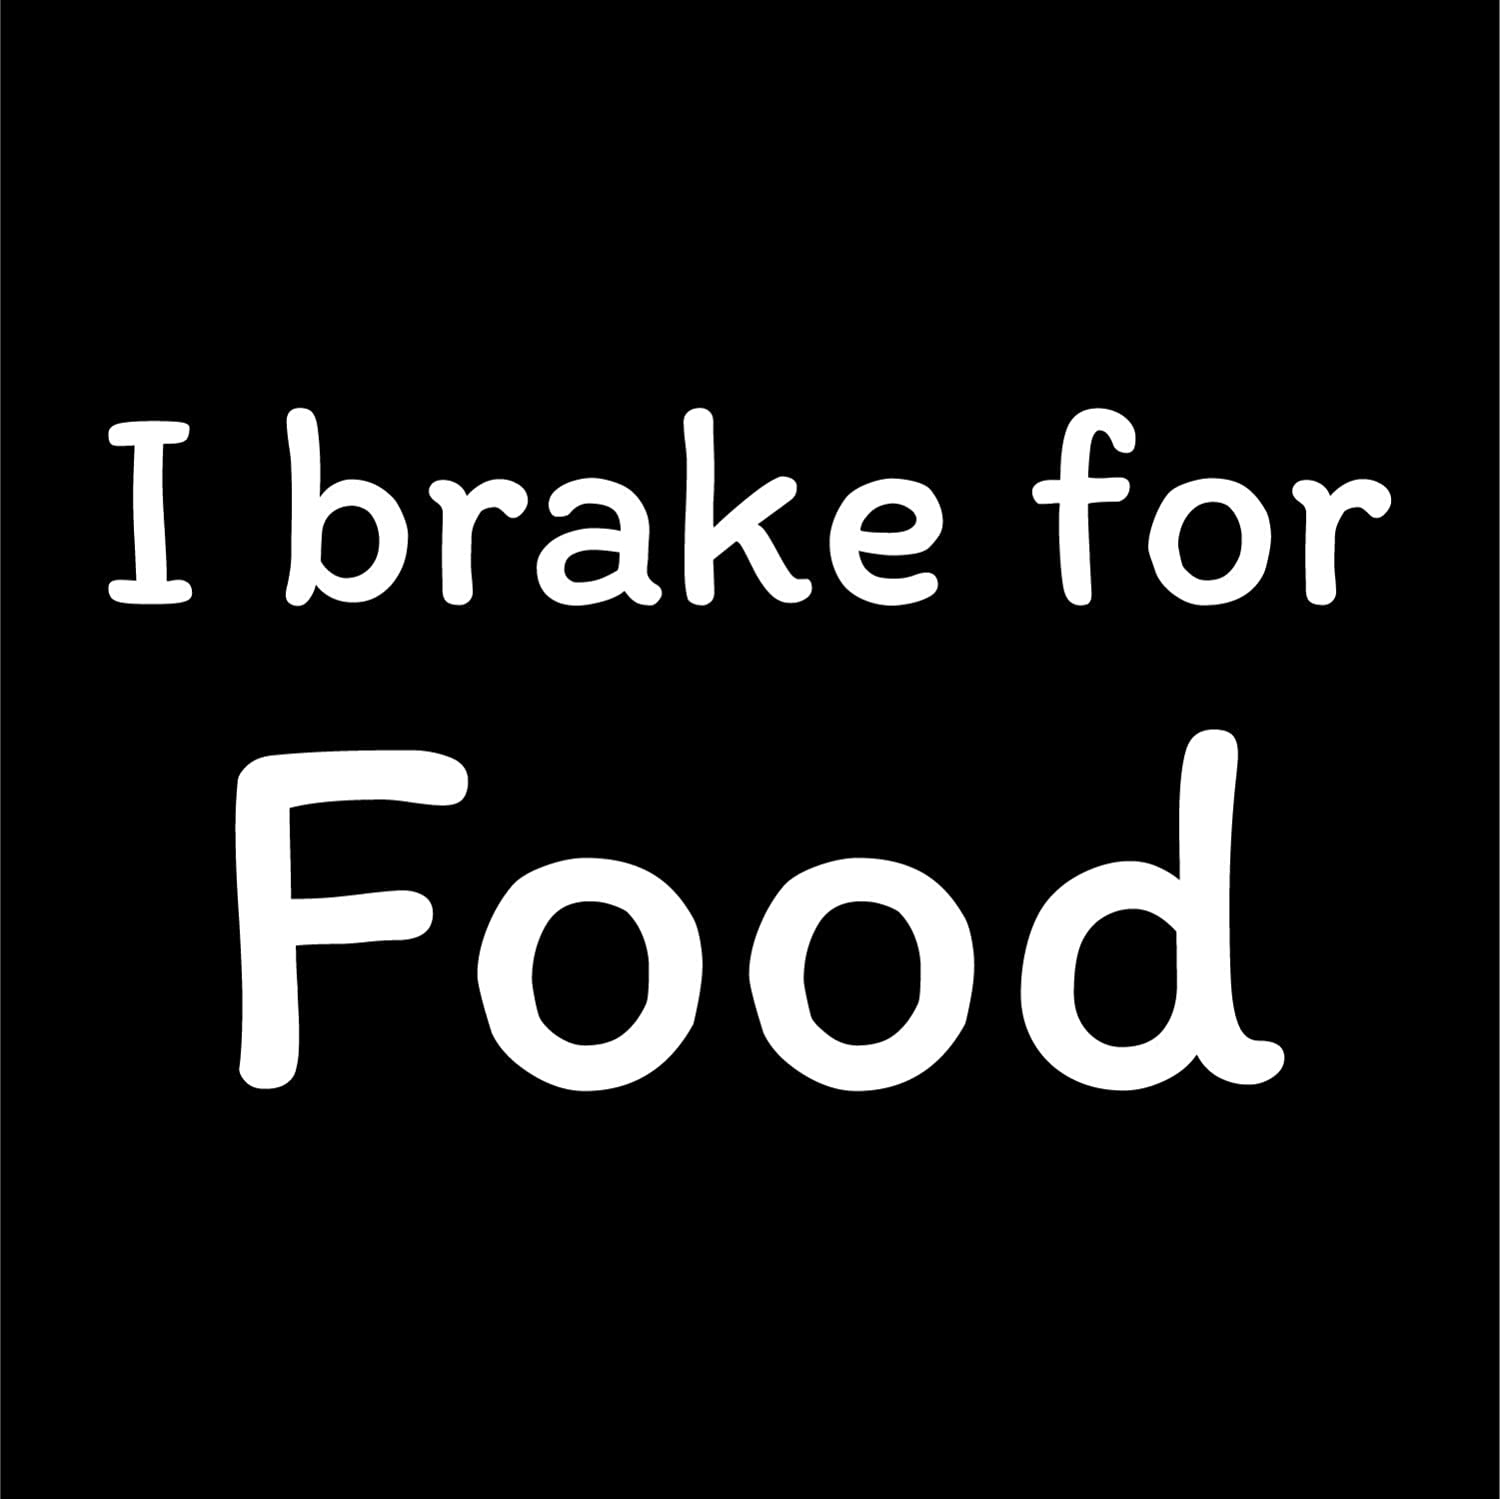 More Shiz I Brake for Food Vinyl Decal Sticker - Car Truck Van SUV Window Wall Cup Laptop - One 7 Inch Decal - MKS0724